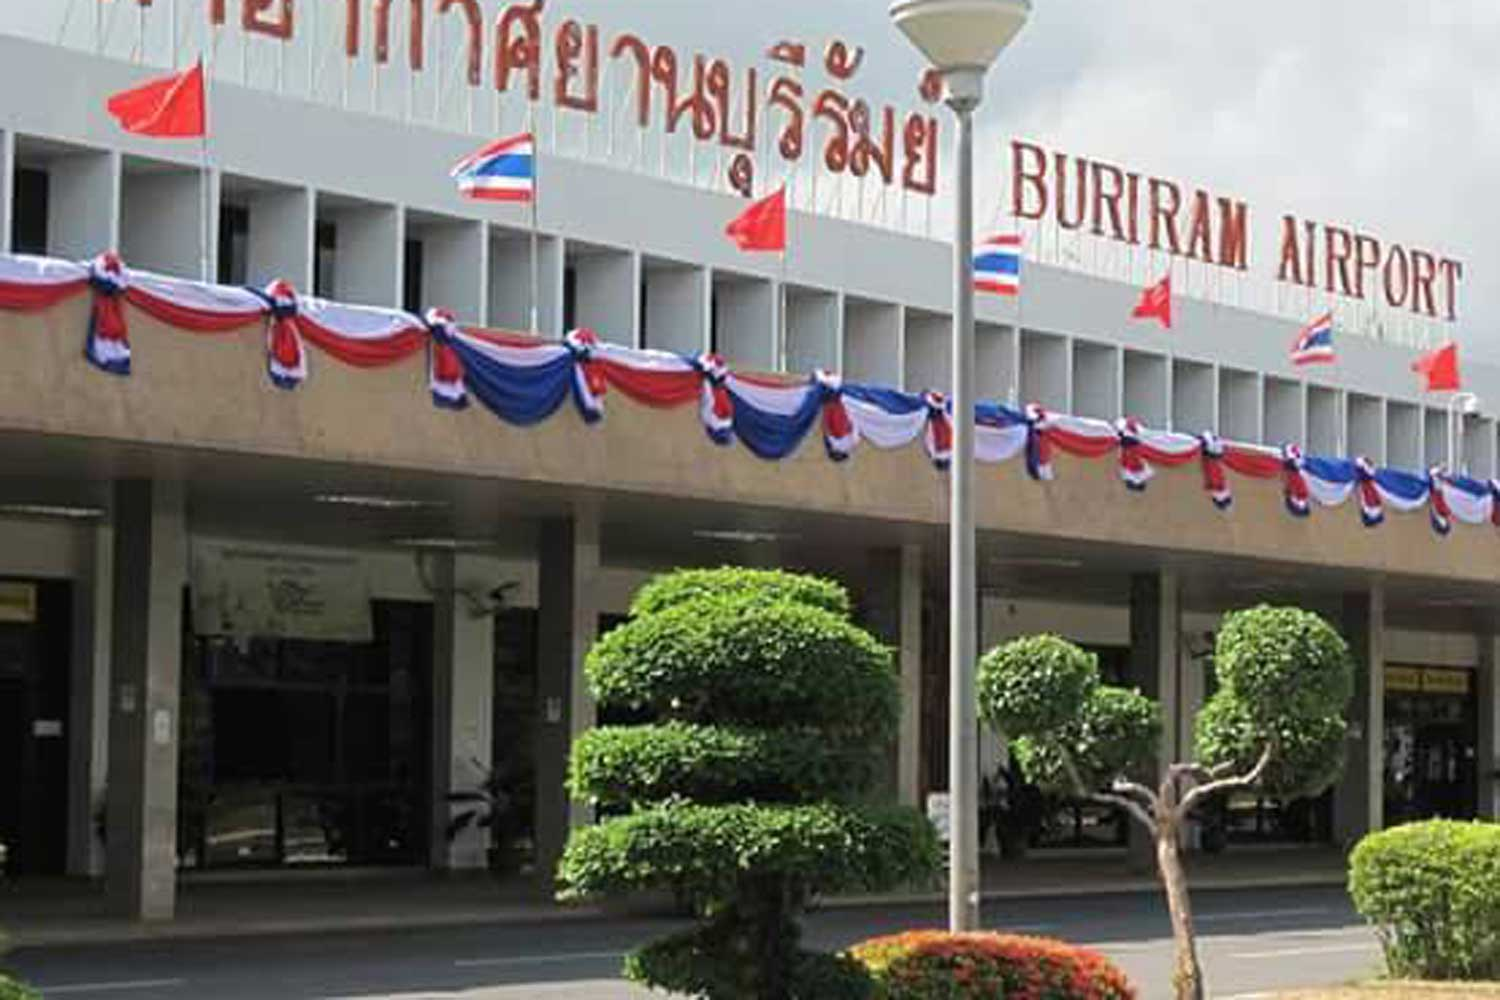 Buriram airport is a new inclusion in the Airports of Thailand's takeover and upgrade plans. (Photo: Buriram airport Facebook account)